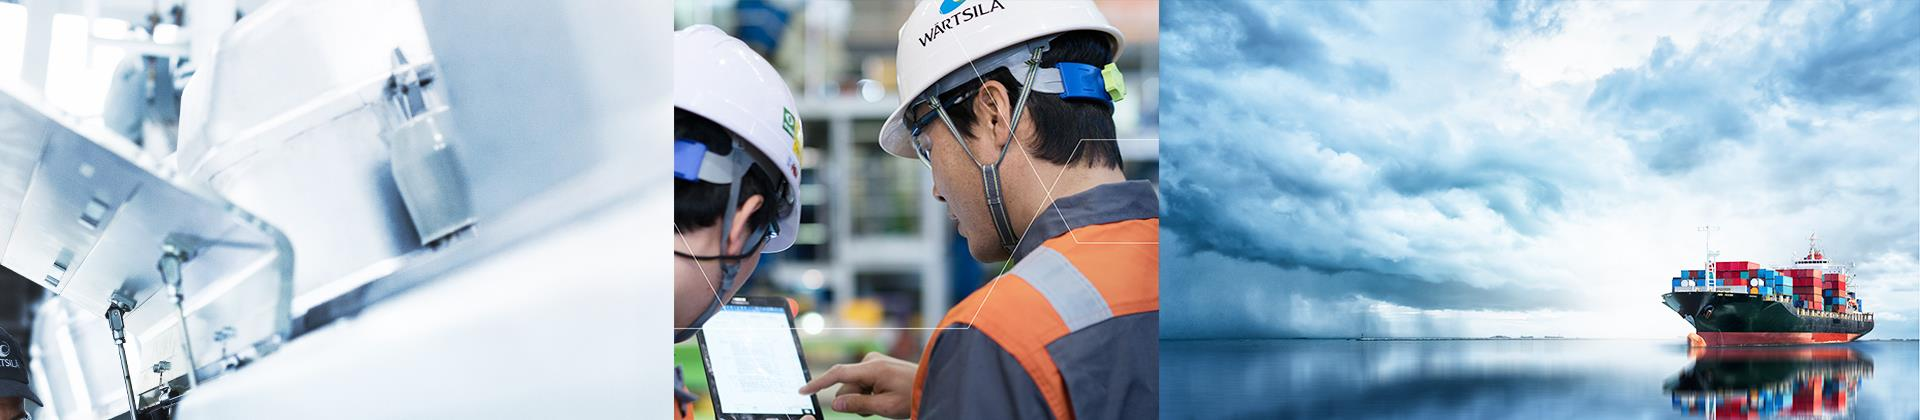 Wärtsilä - Enabling sustainable societies with smart technology